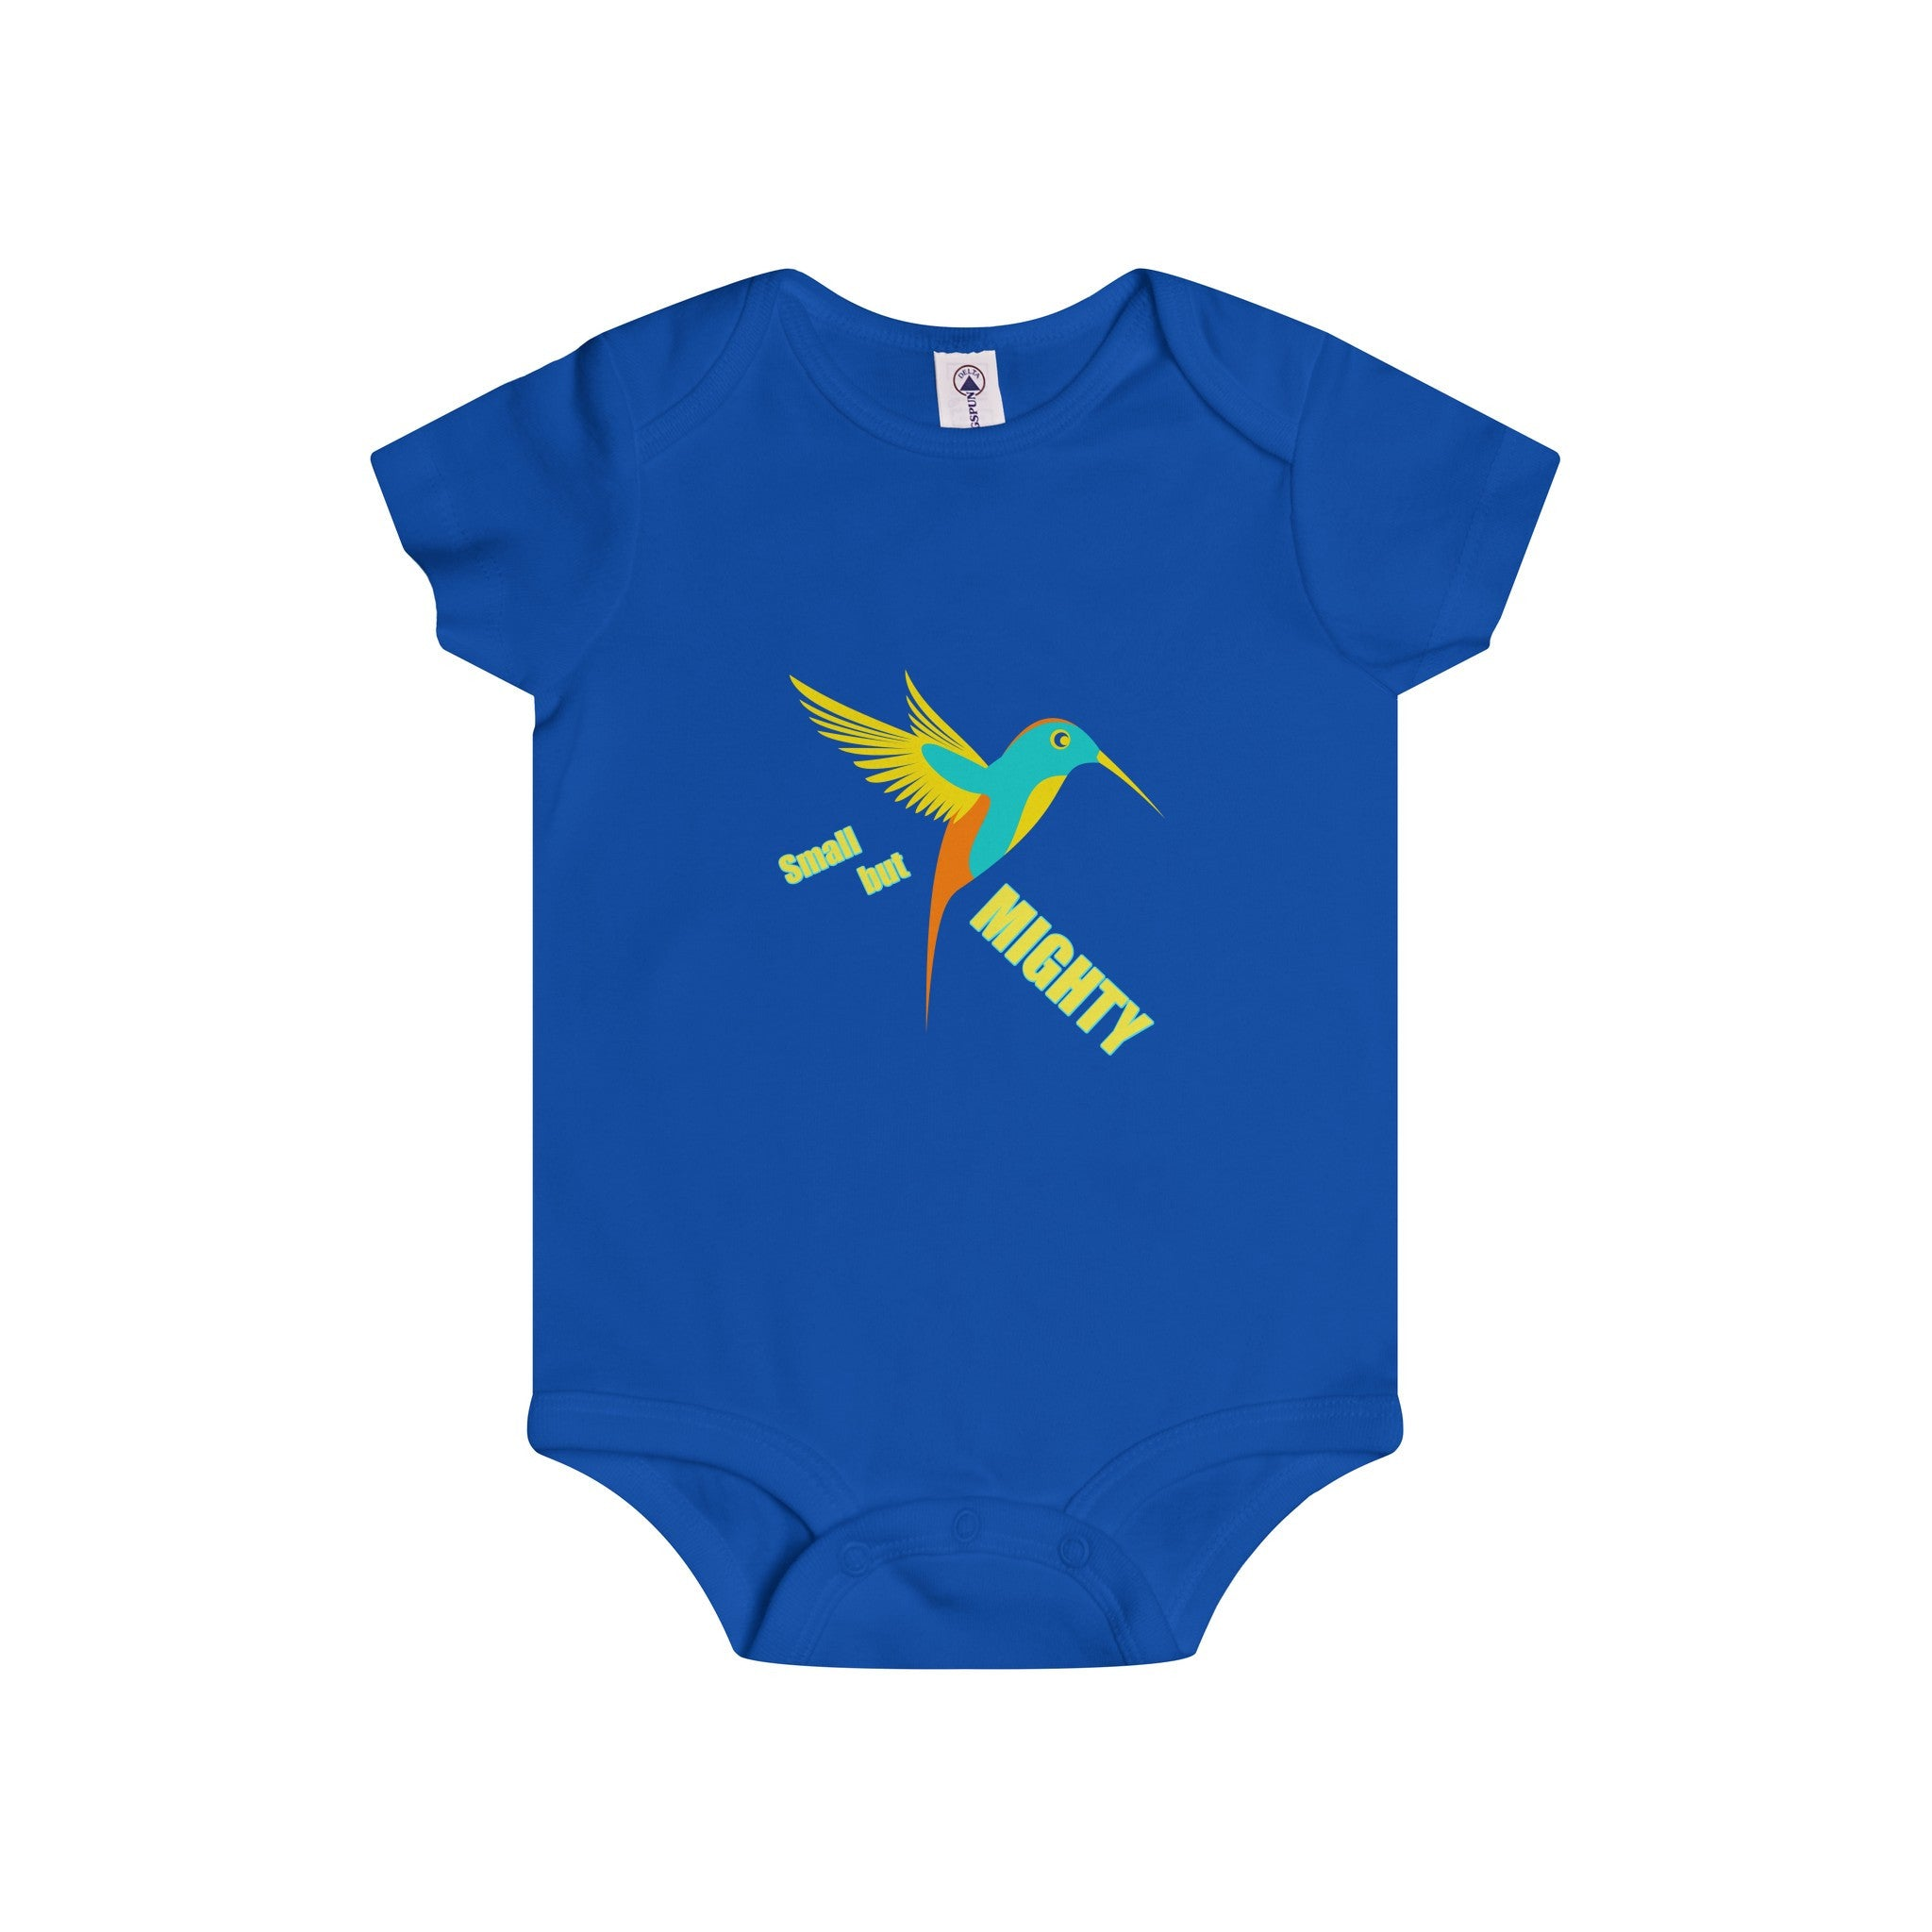 Small But Mighty Multi-color Design Onesie (3 colors available)